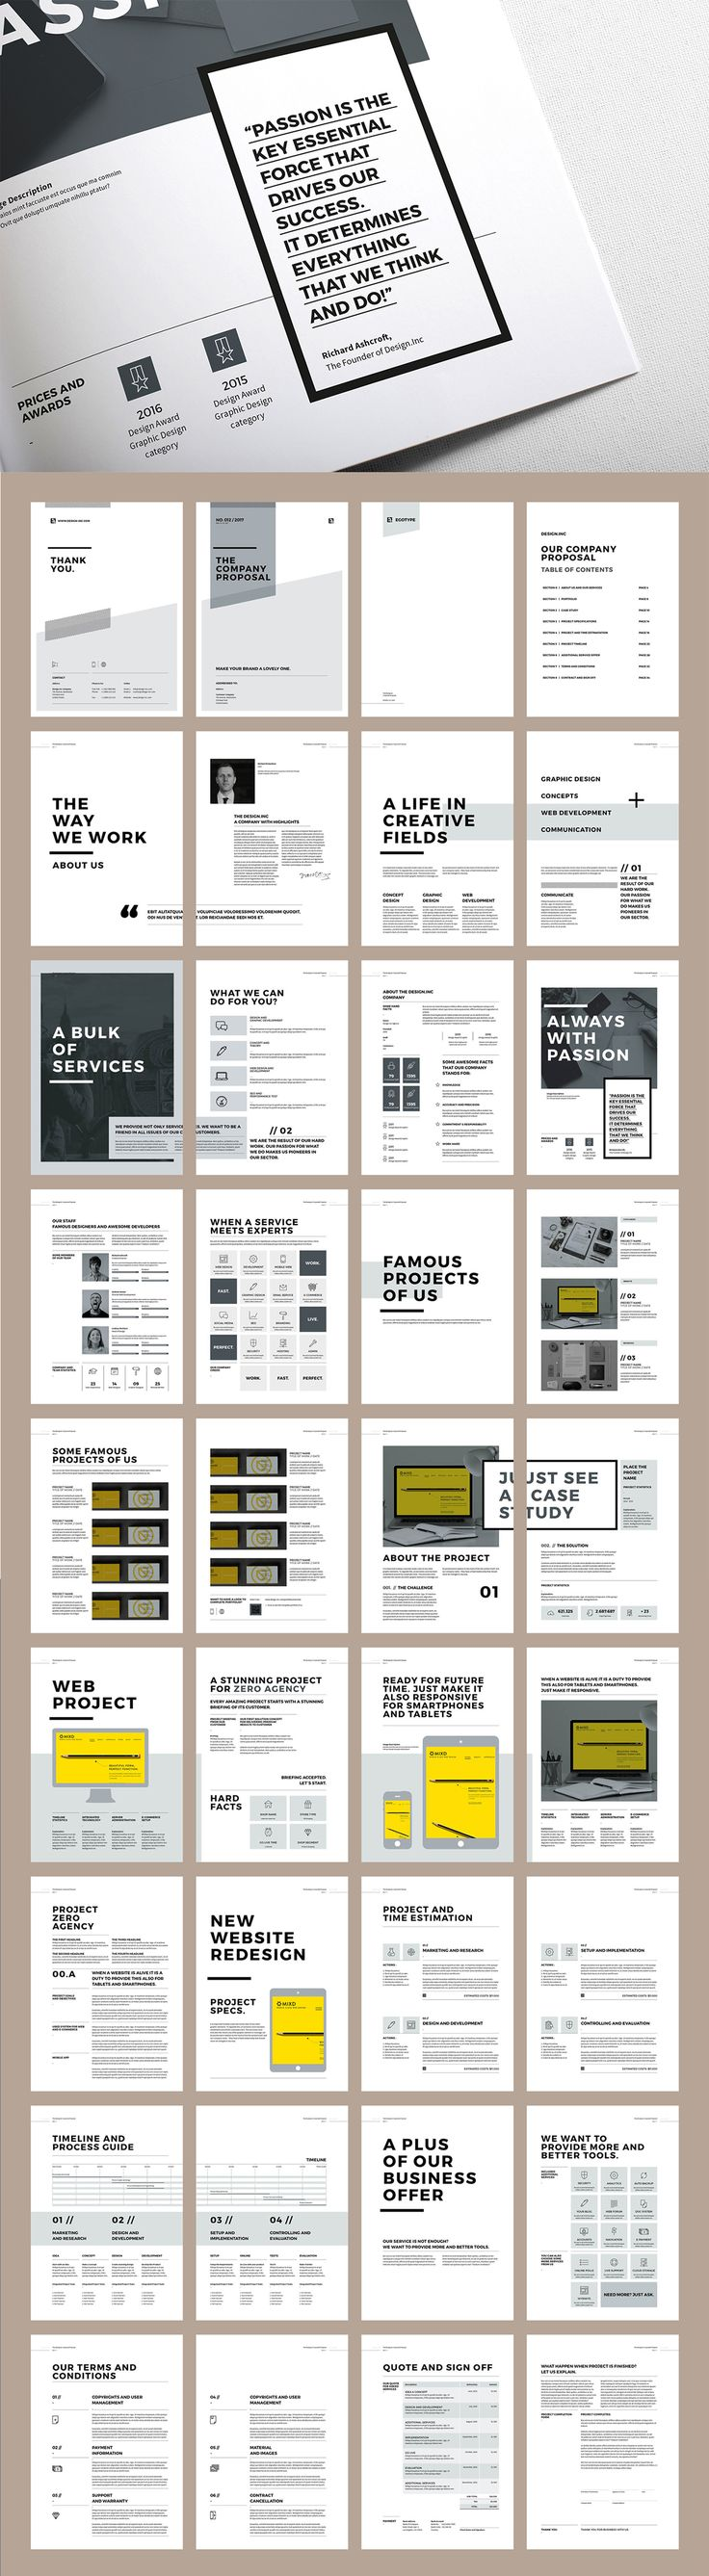 Best 25 Report design ideas on Pinterest Booklet design